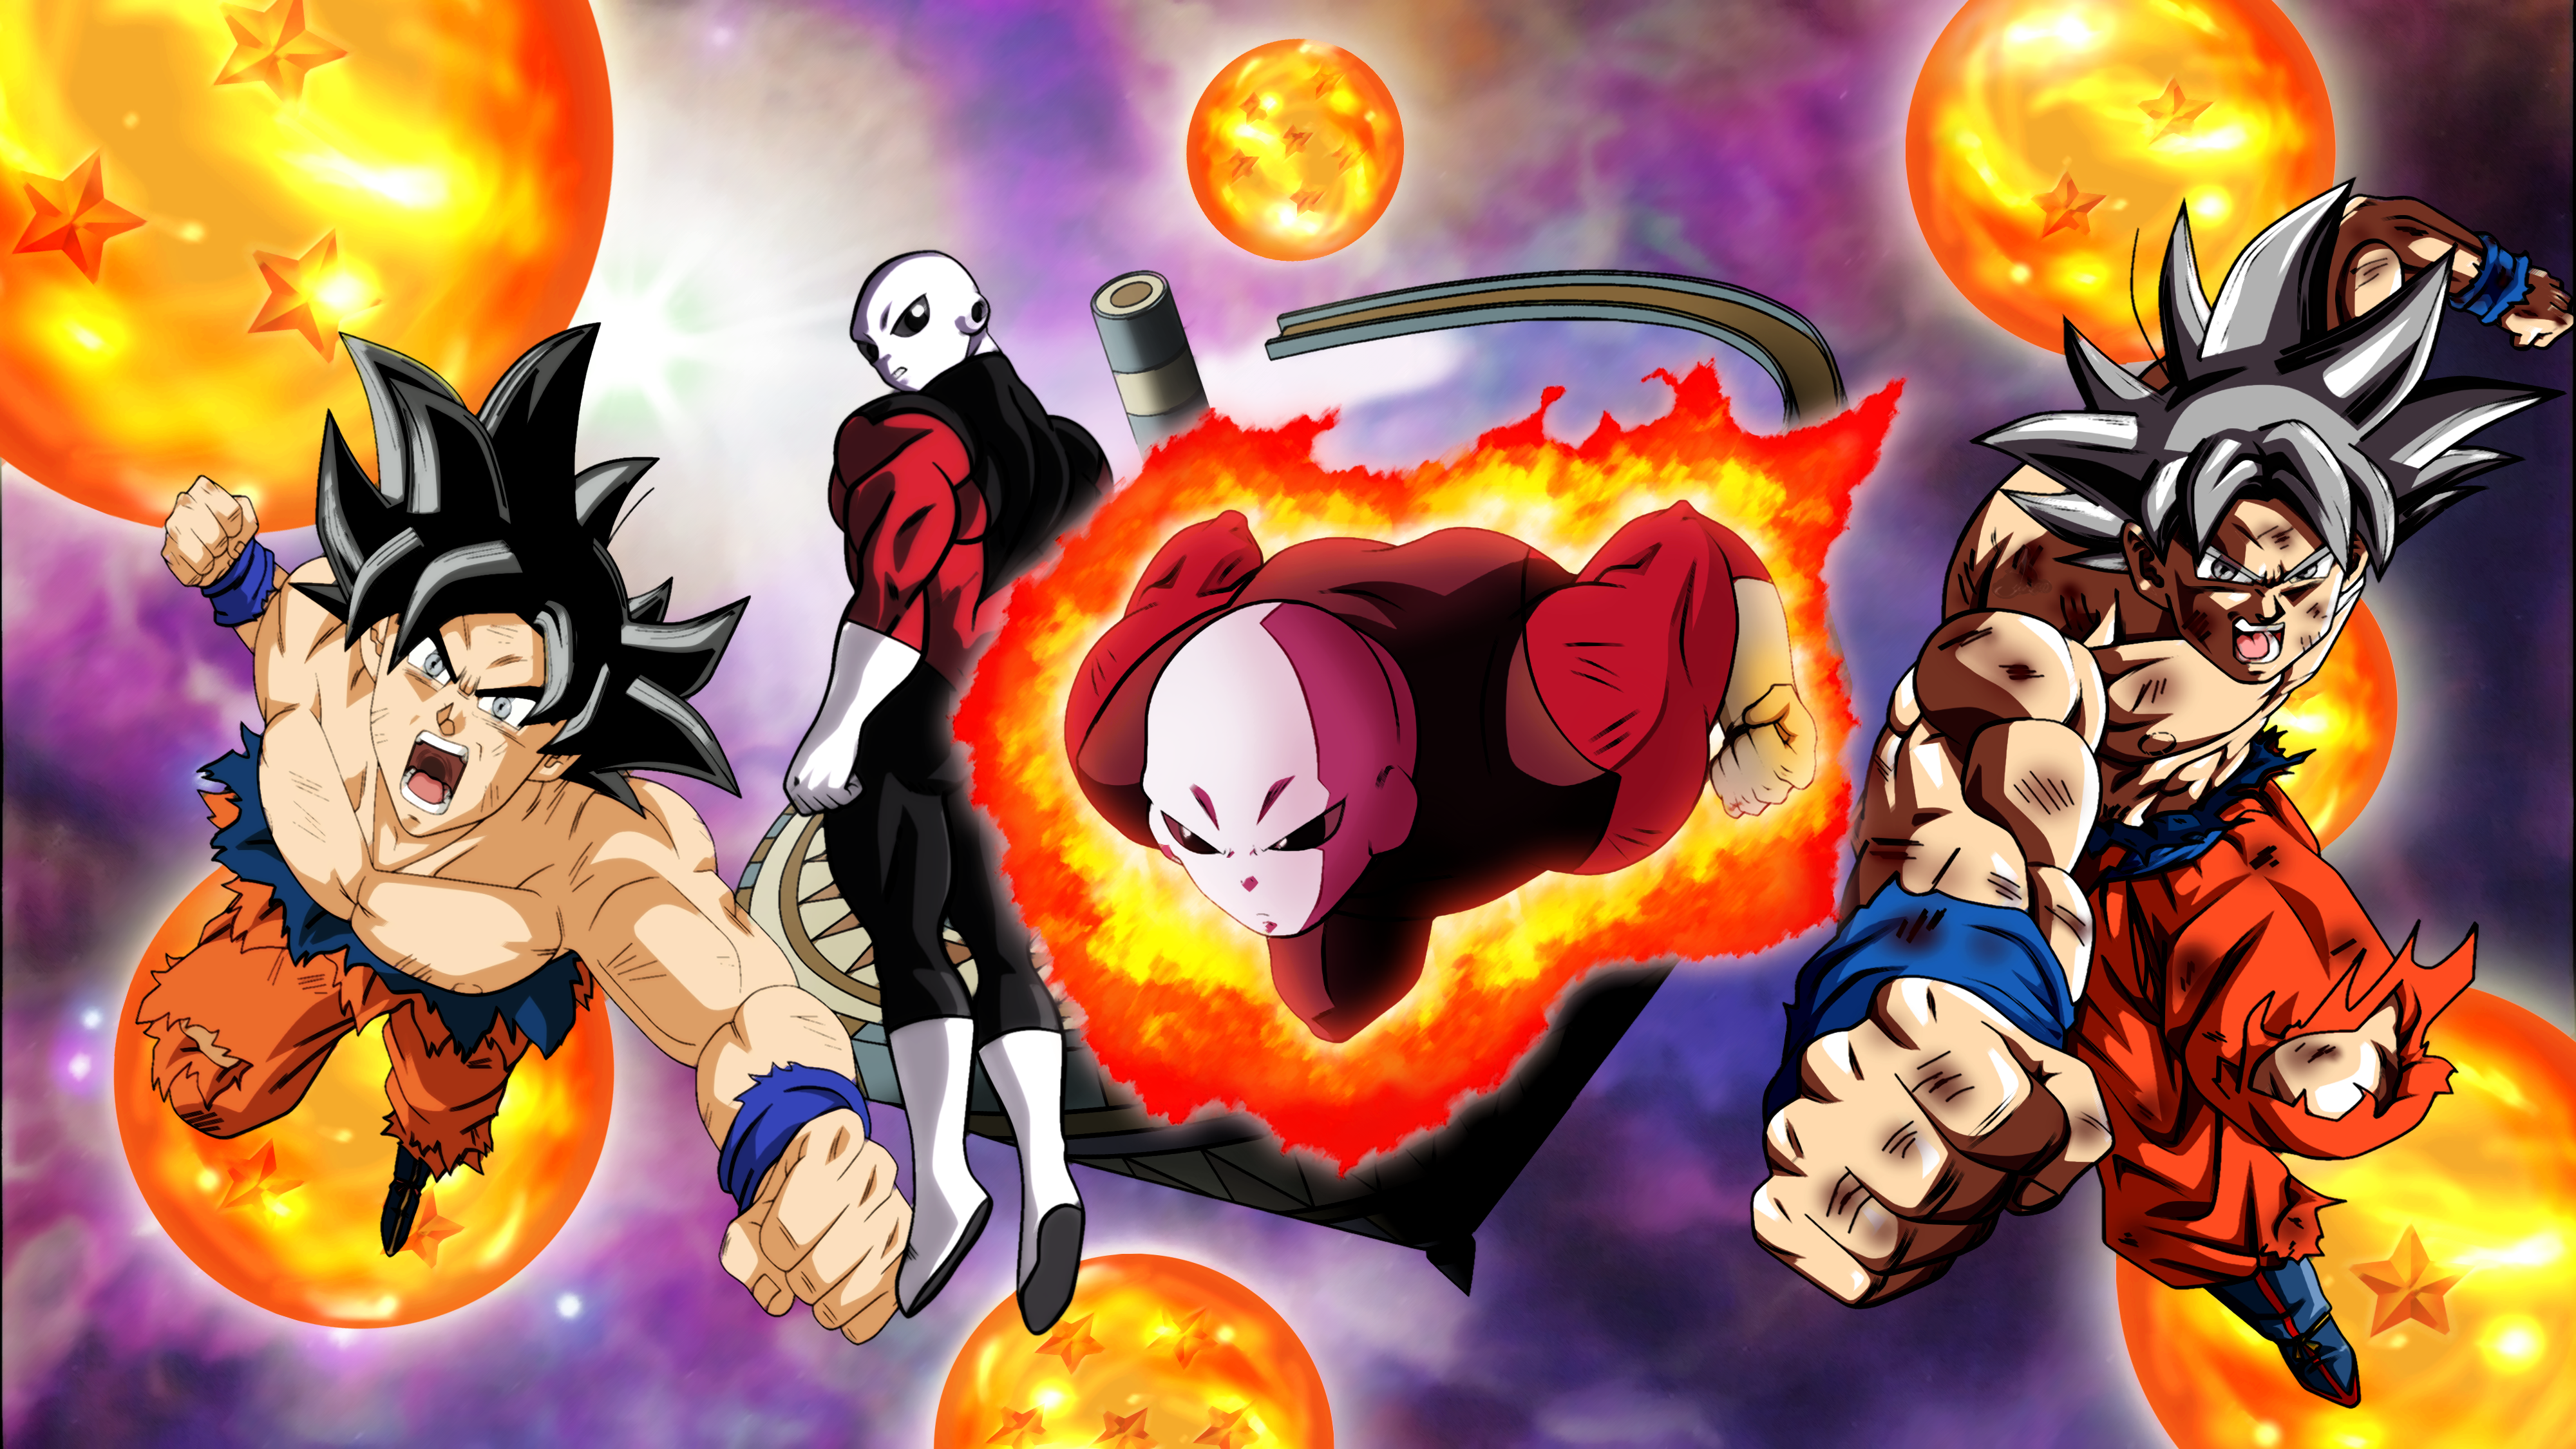 Goku Mastered Ultra Instinct And Jiren 4k Ultra Hd Wallpaper